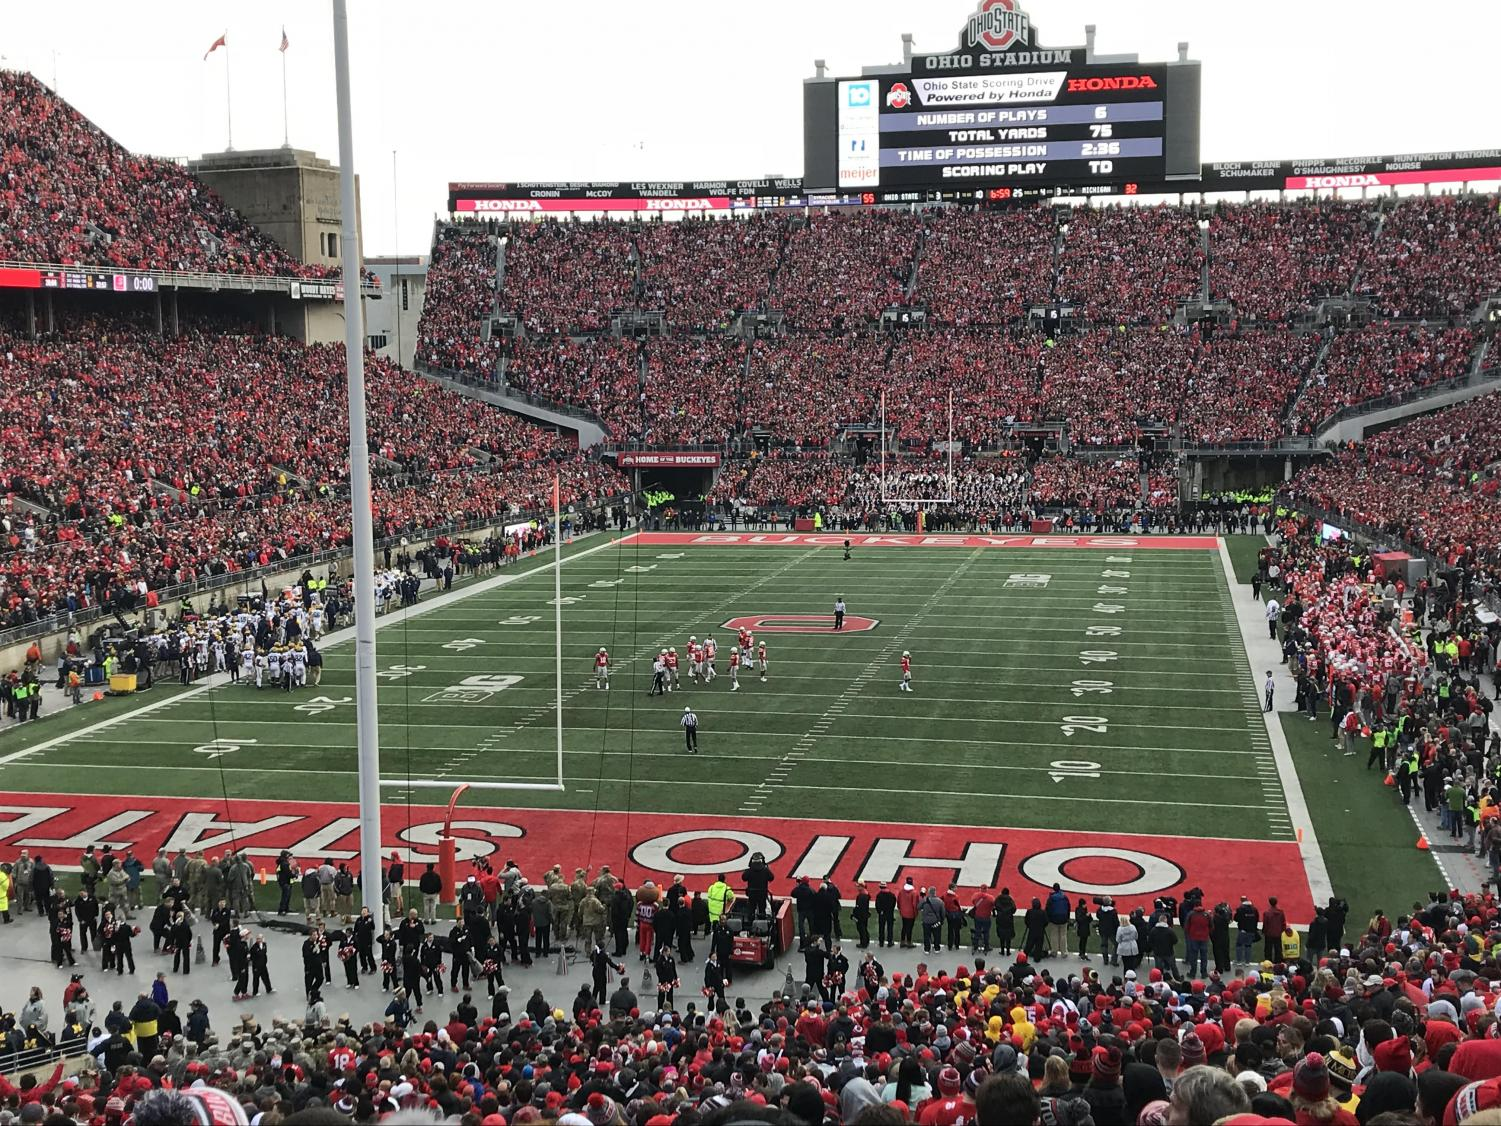 The beauty of the Ohio State's stadium during game time.